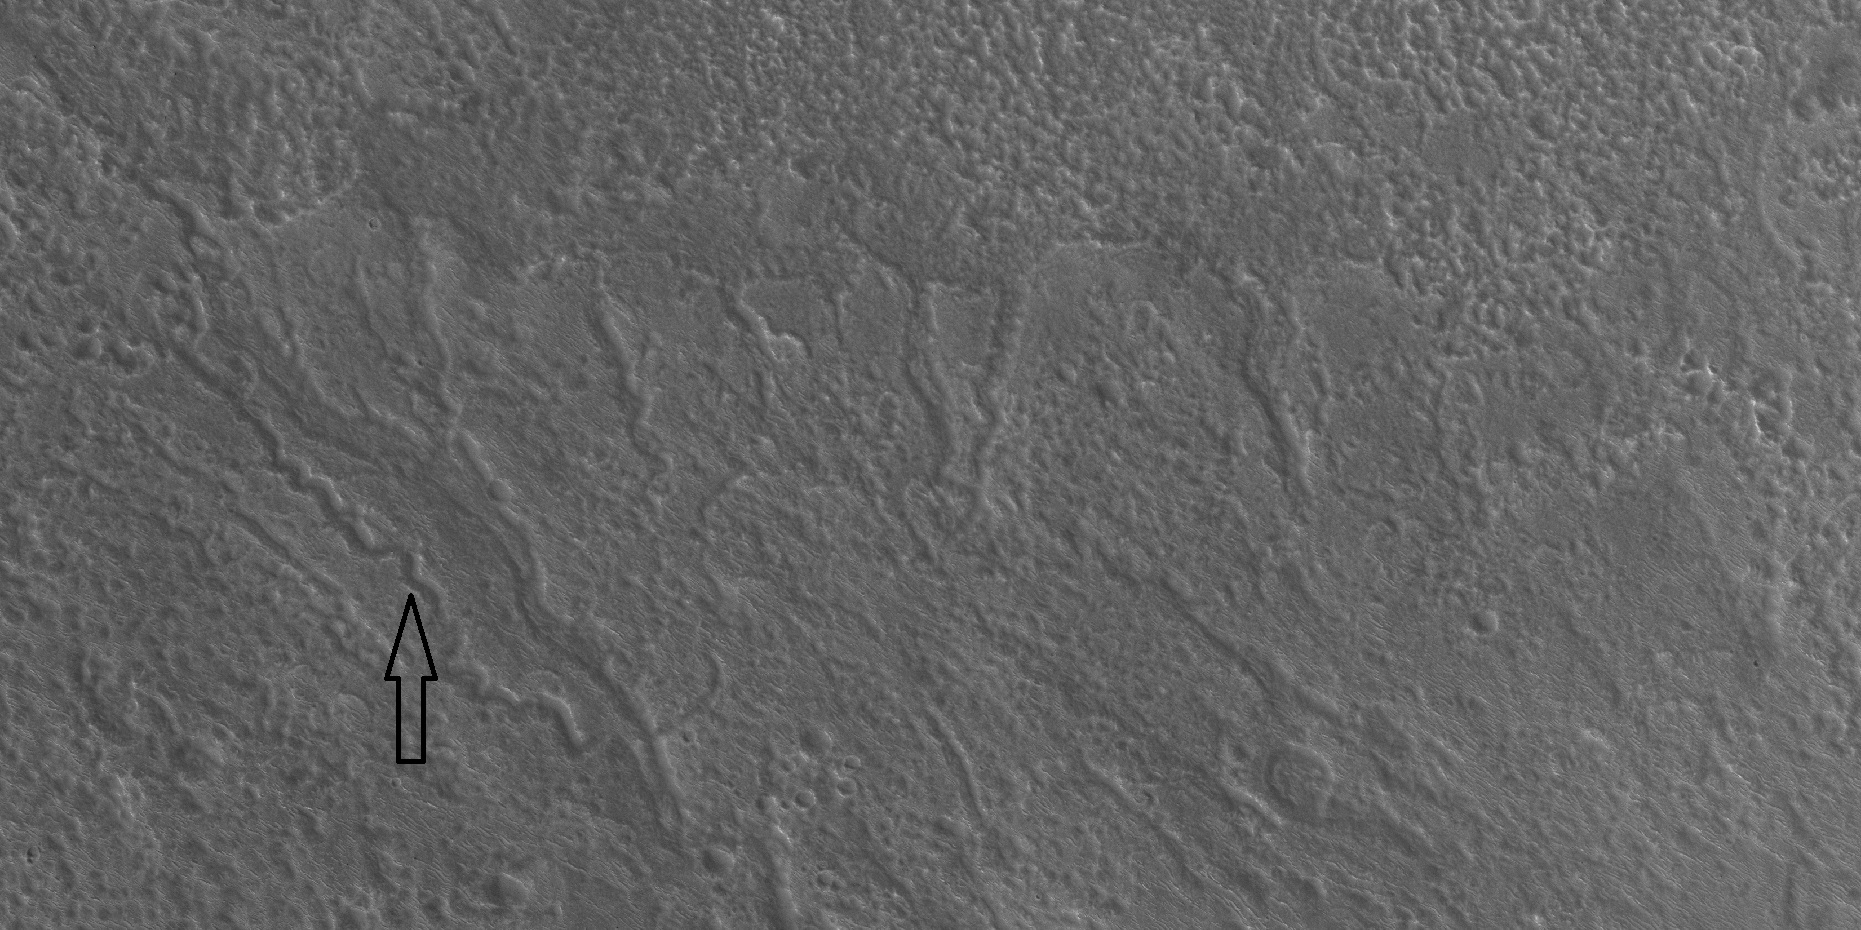 Channels,as seen by HiRISE under the HiWish program